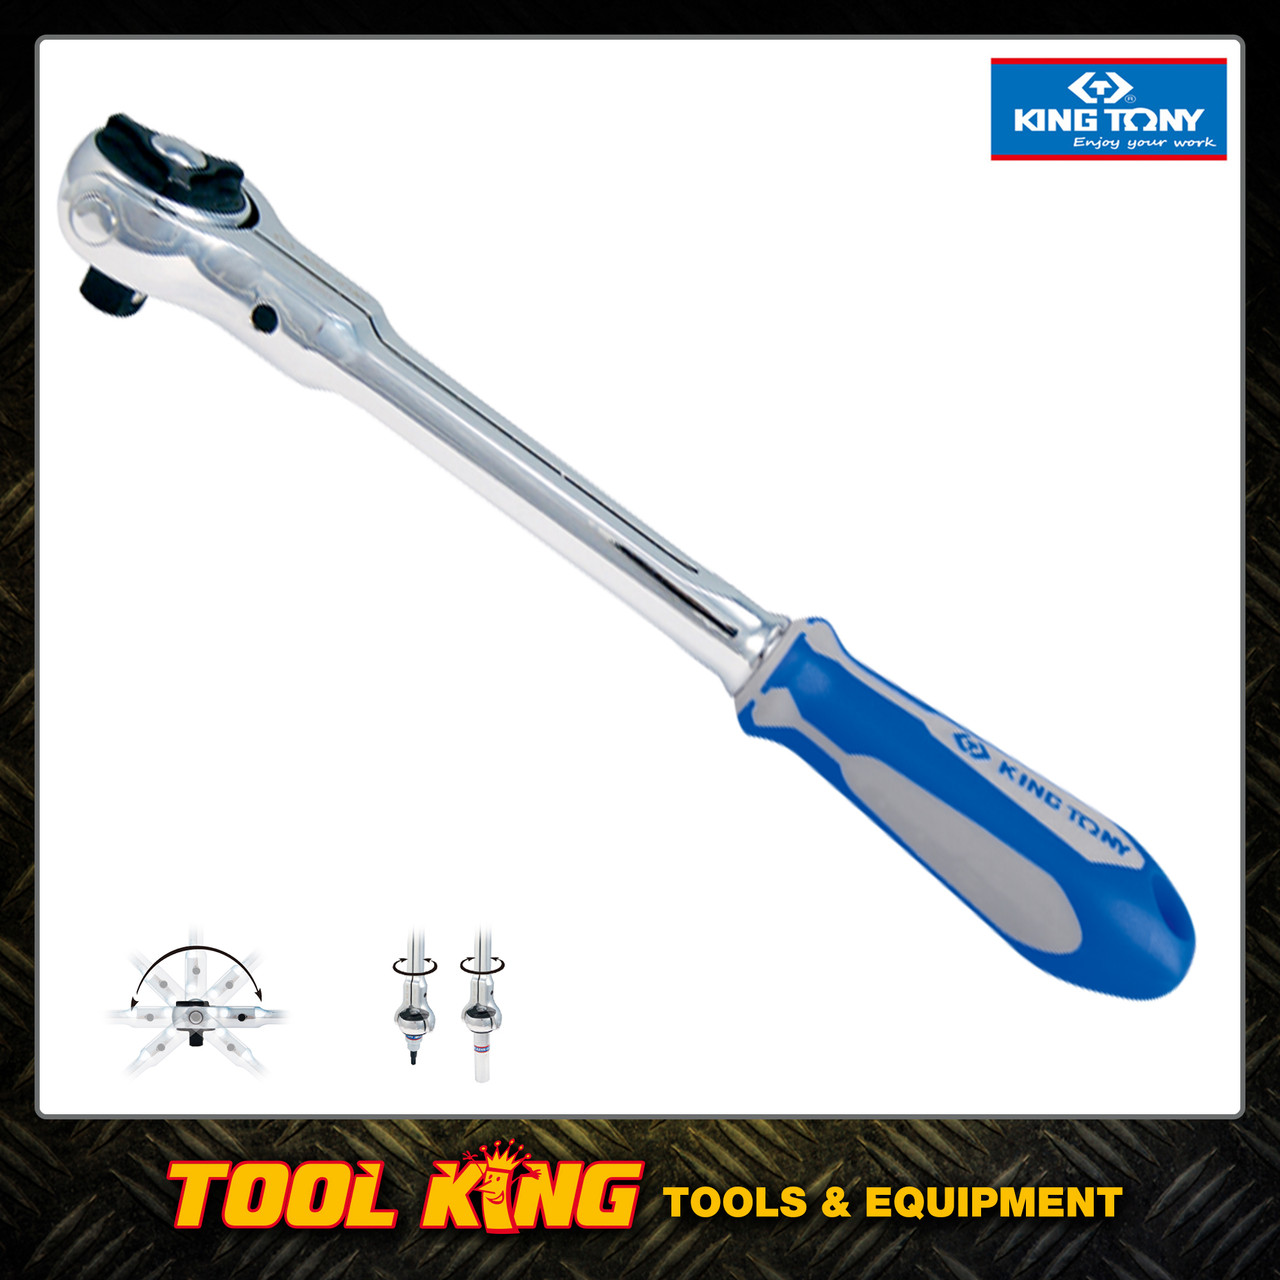 "Swivel head 1/2"" Drive Ratchet  KING TONY Professional"